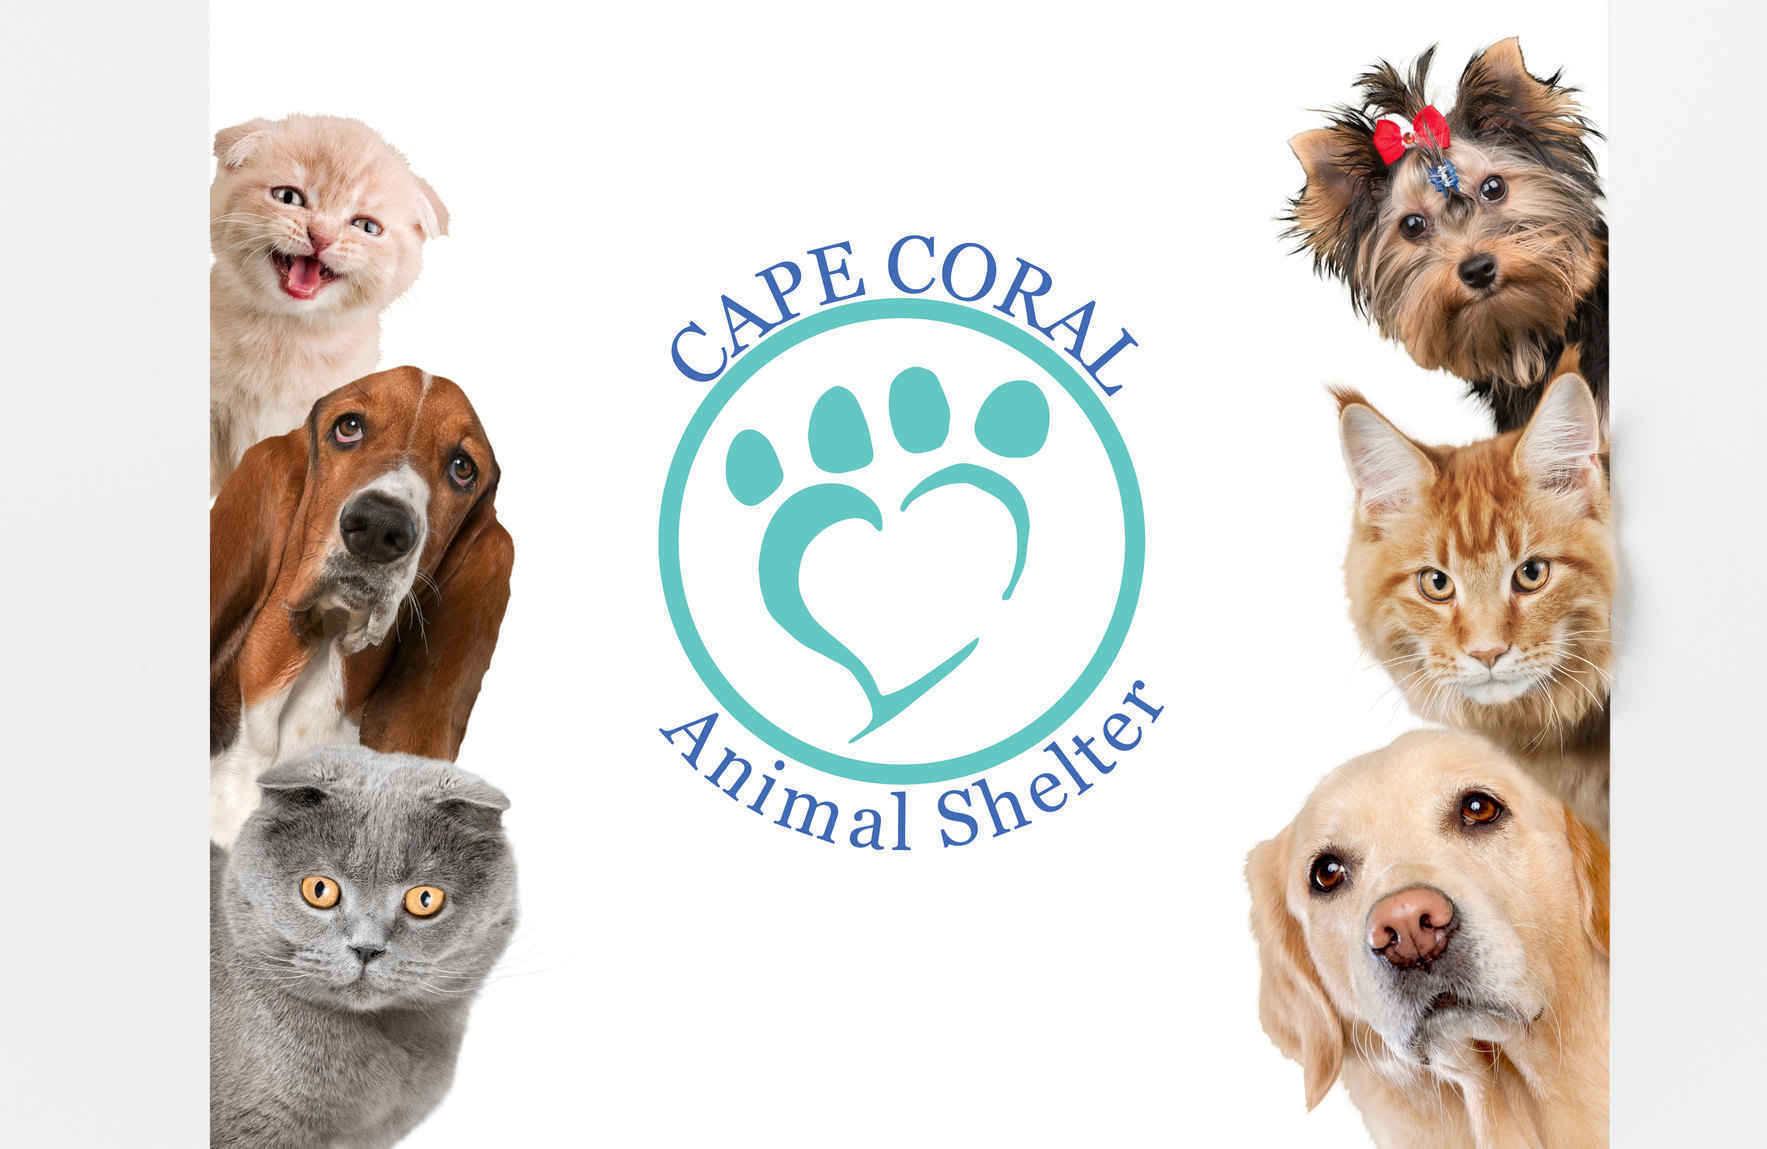 Help Bring New Hope to Homeless Animals image